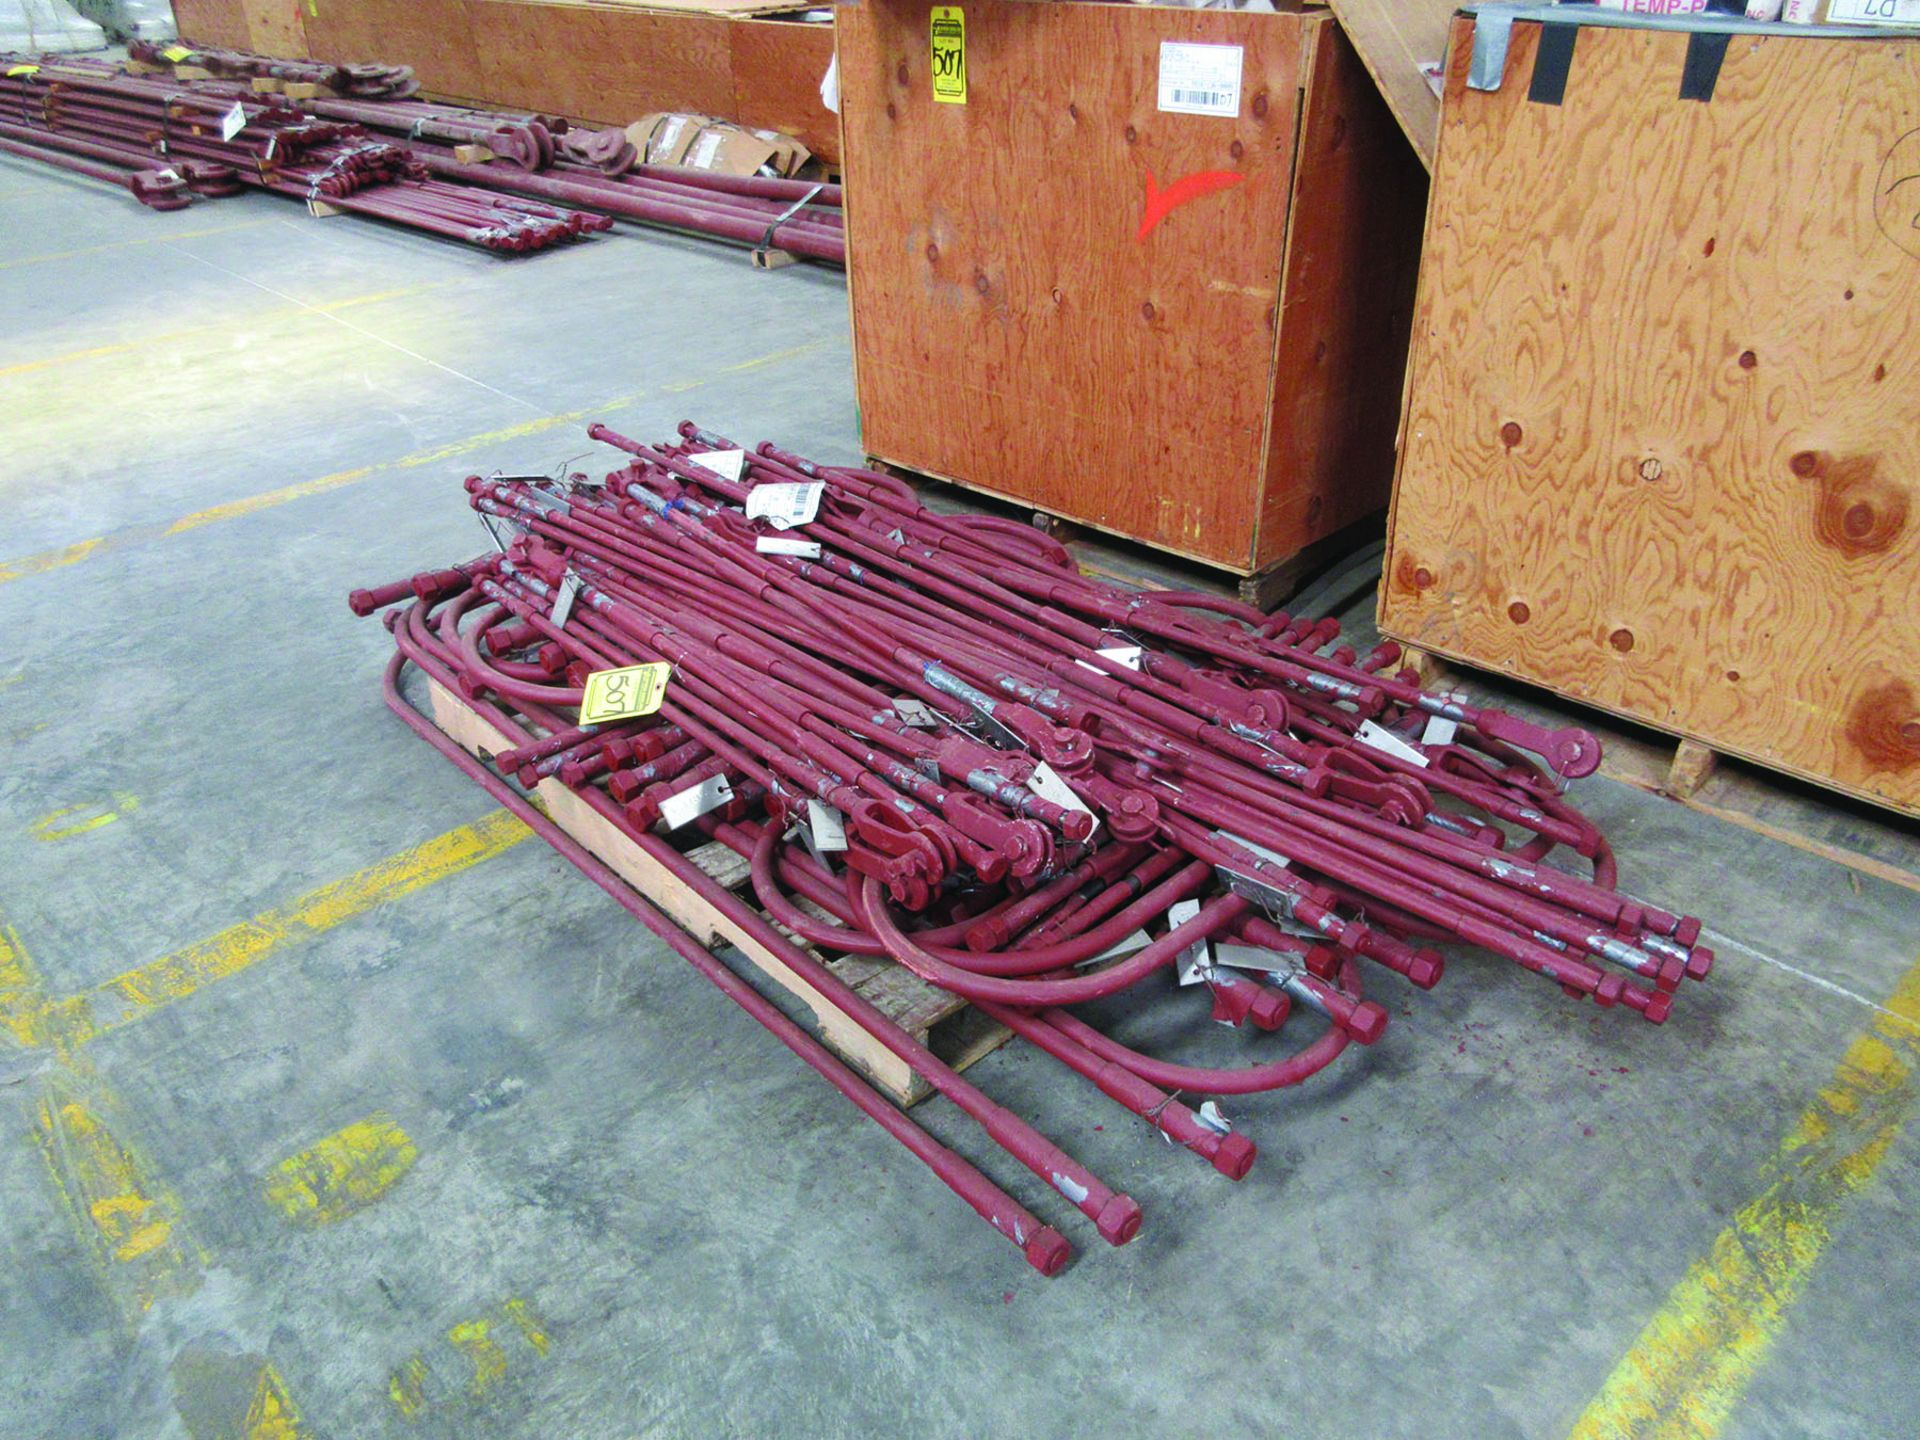 STRUCTURAL STEEL: RODS, PIPE, BRACKETS, FLANGES, GRID D7 - Image 3 of 14